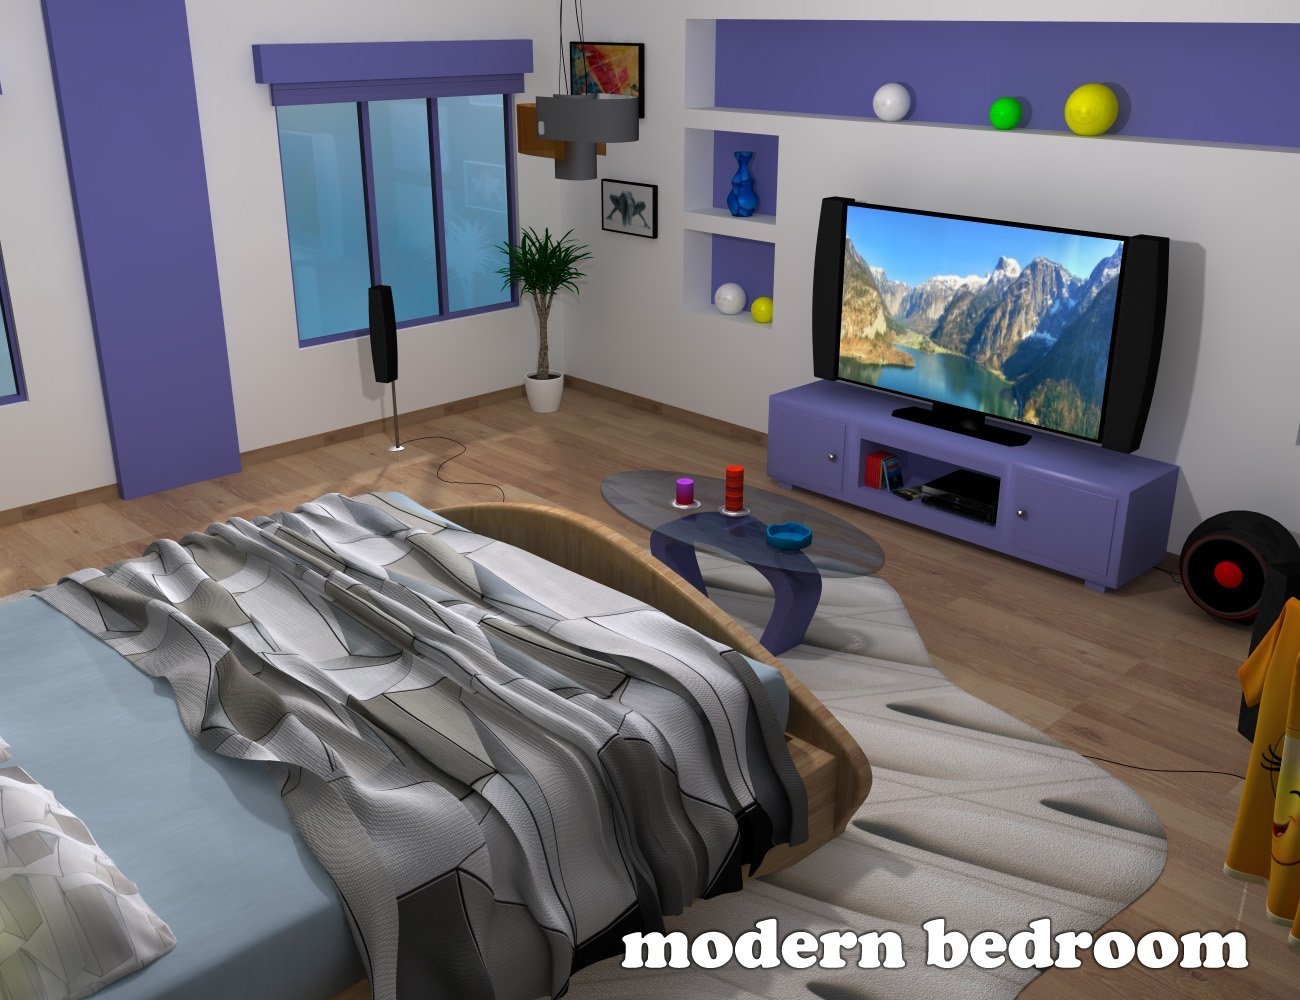 Modern Bedroom - Extended License by greenpots